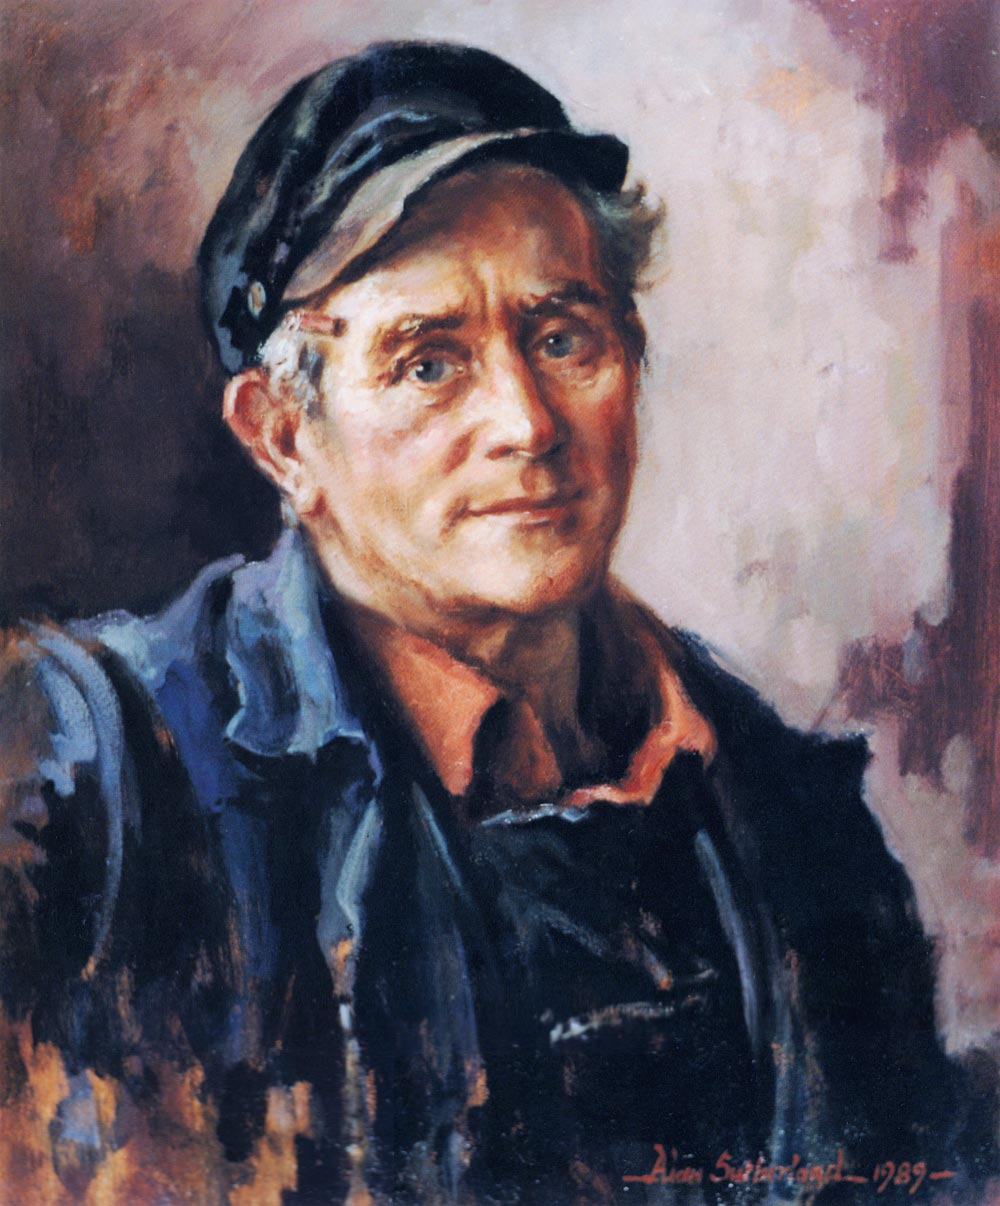 Portrait - Bob Mackenzie, Carpenter/Joiner, Fife Ports